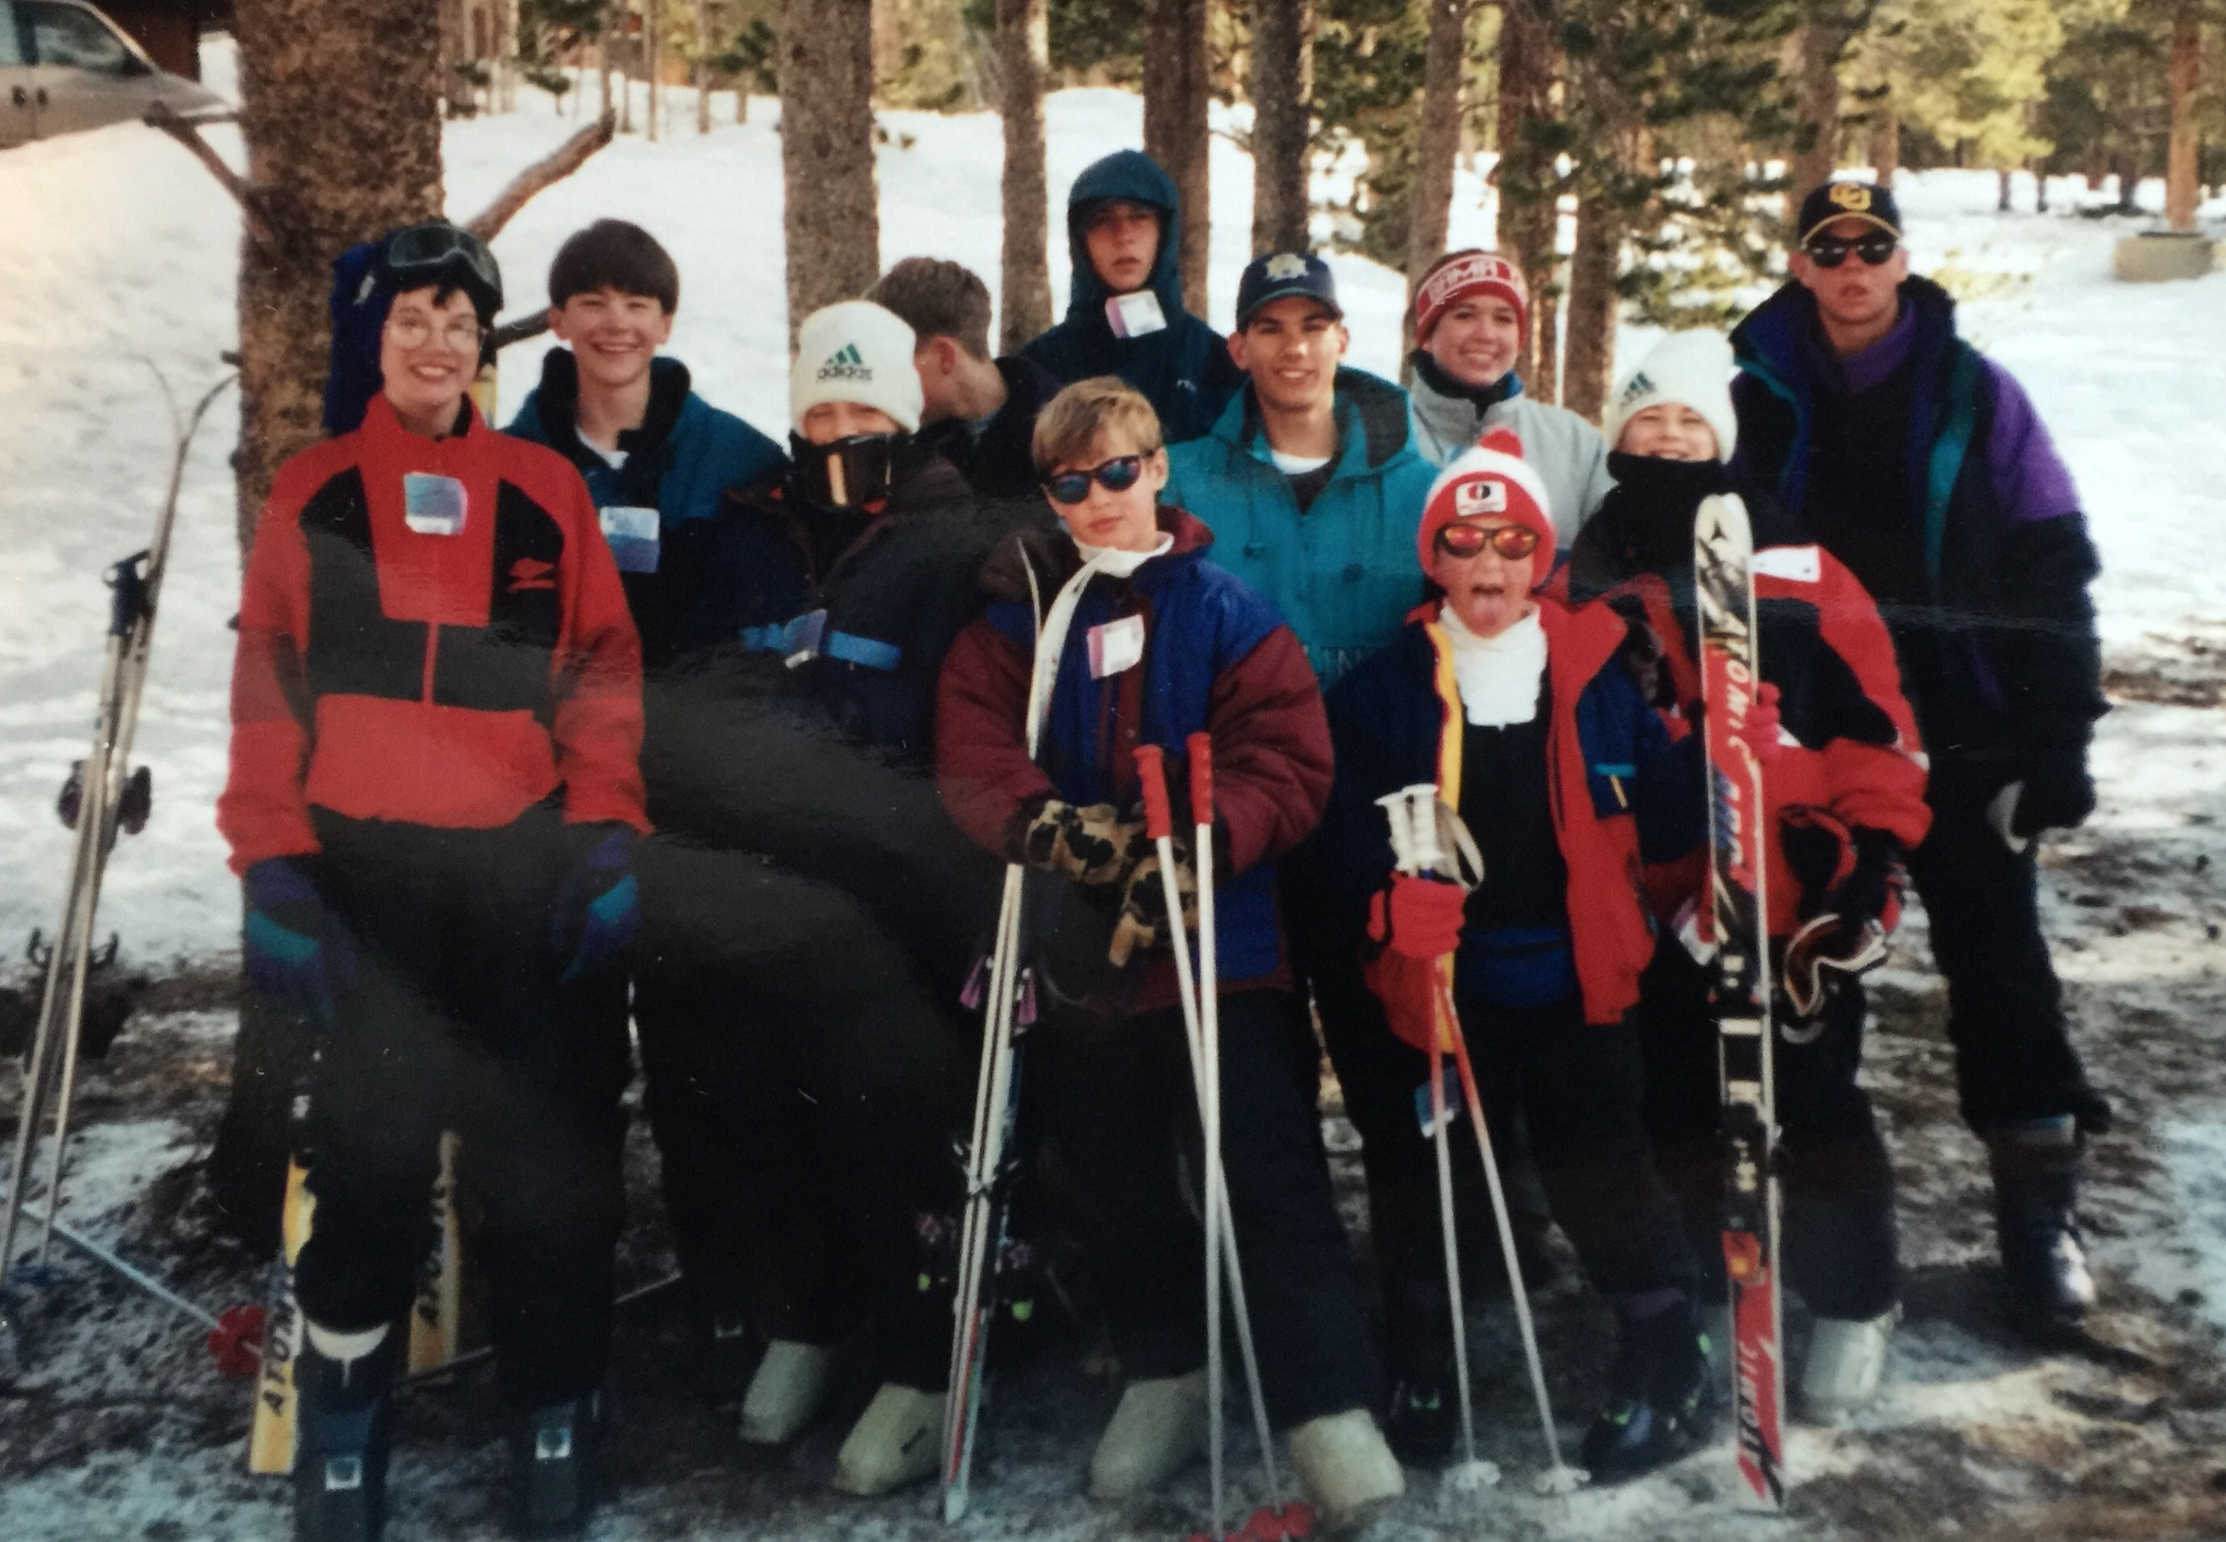 I think this was our first ski trip to Winter Park, Colorado. 1995 maybe? I'm top left, turquoise jacket.